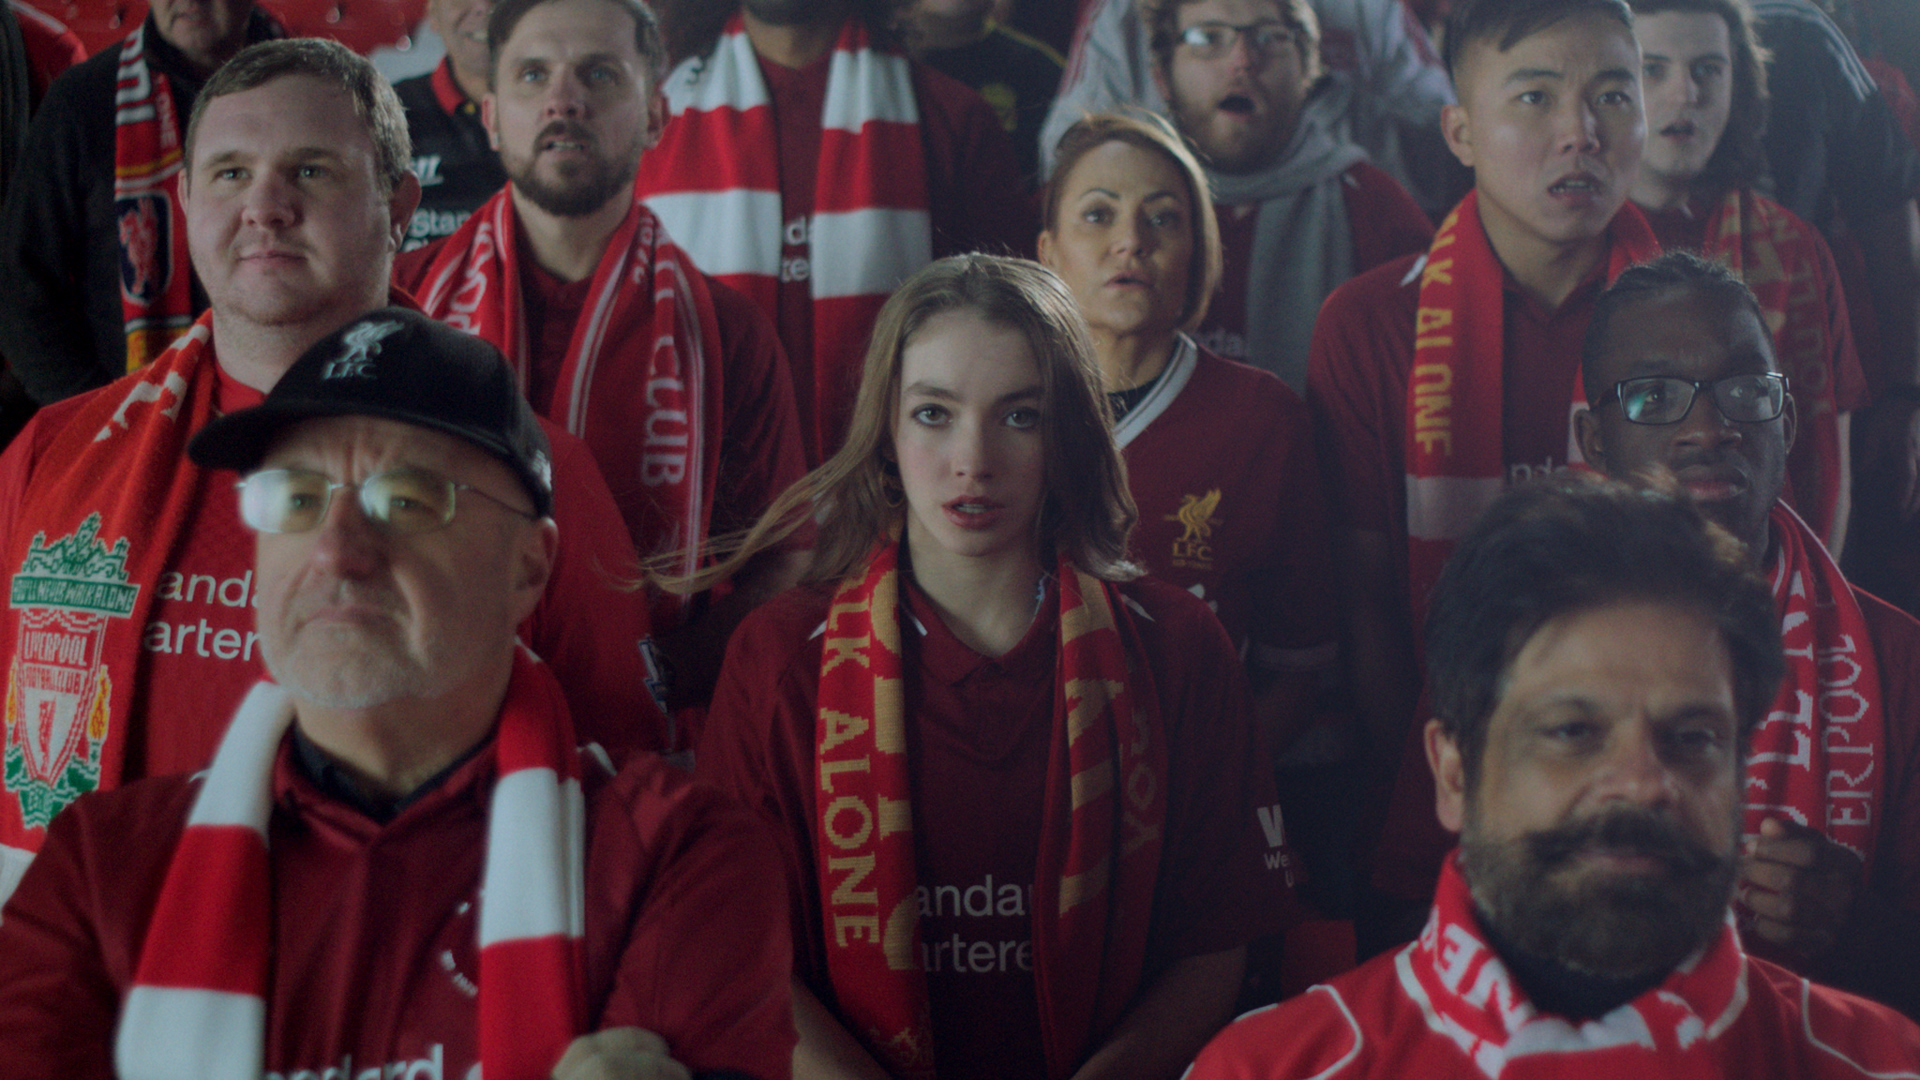 Standard Chartered Celebrates 10-Year Partnership with Liverpool Football Club in New Global Brand Campaign